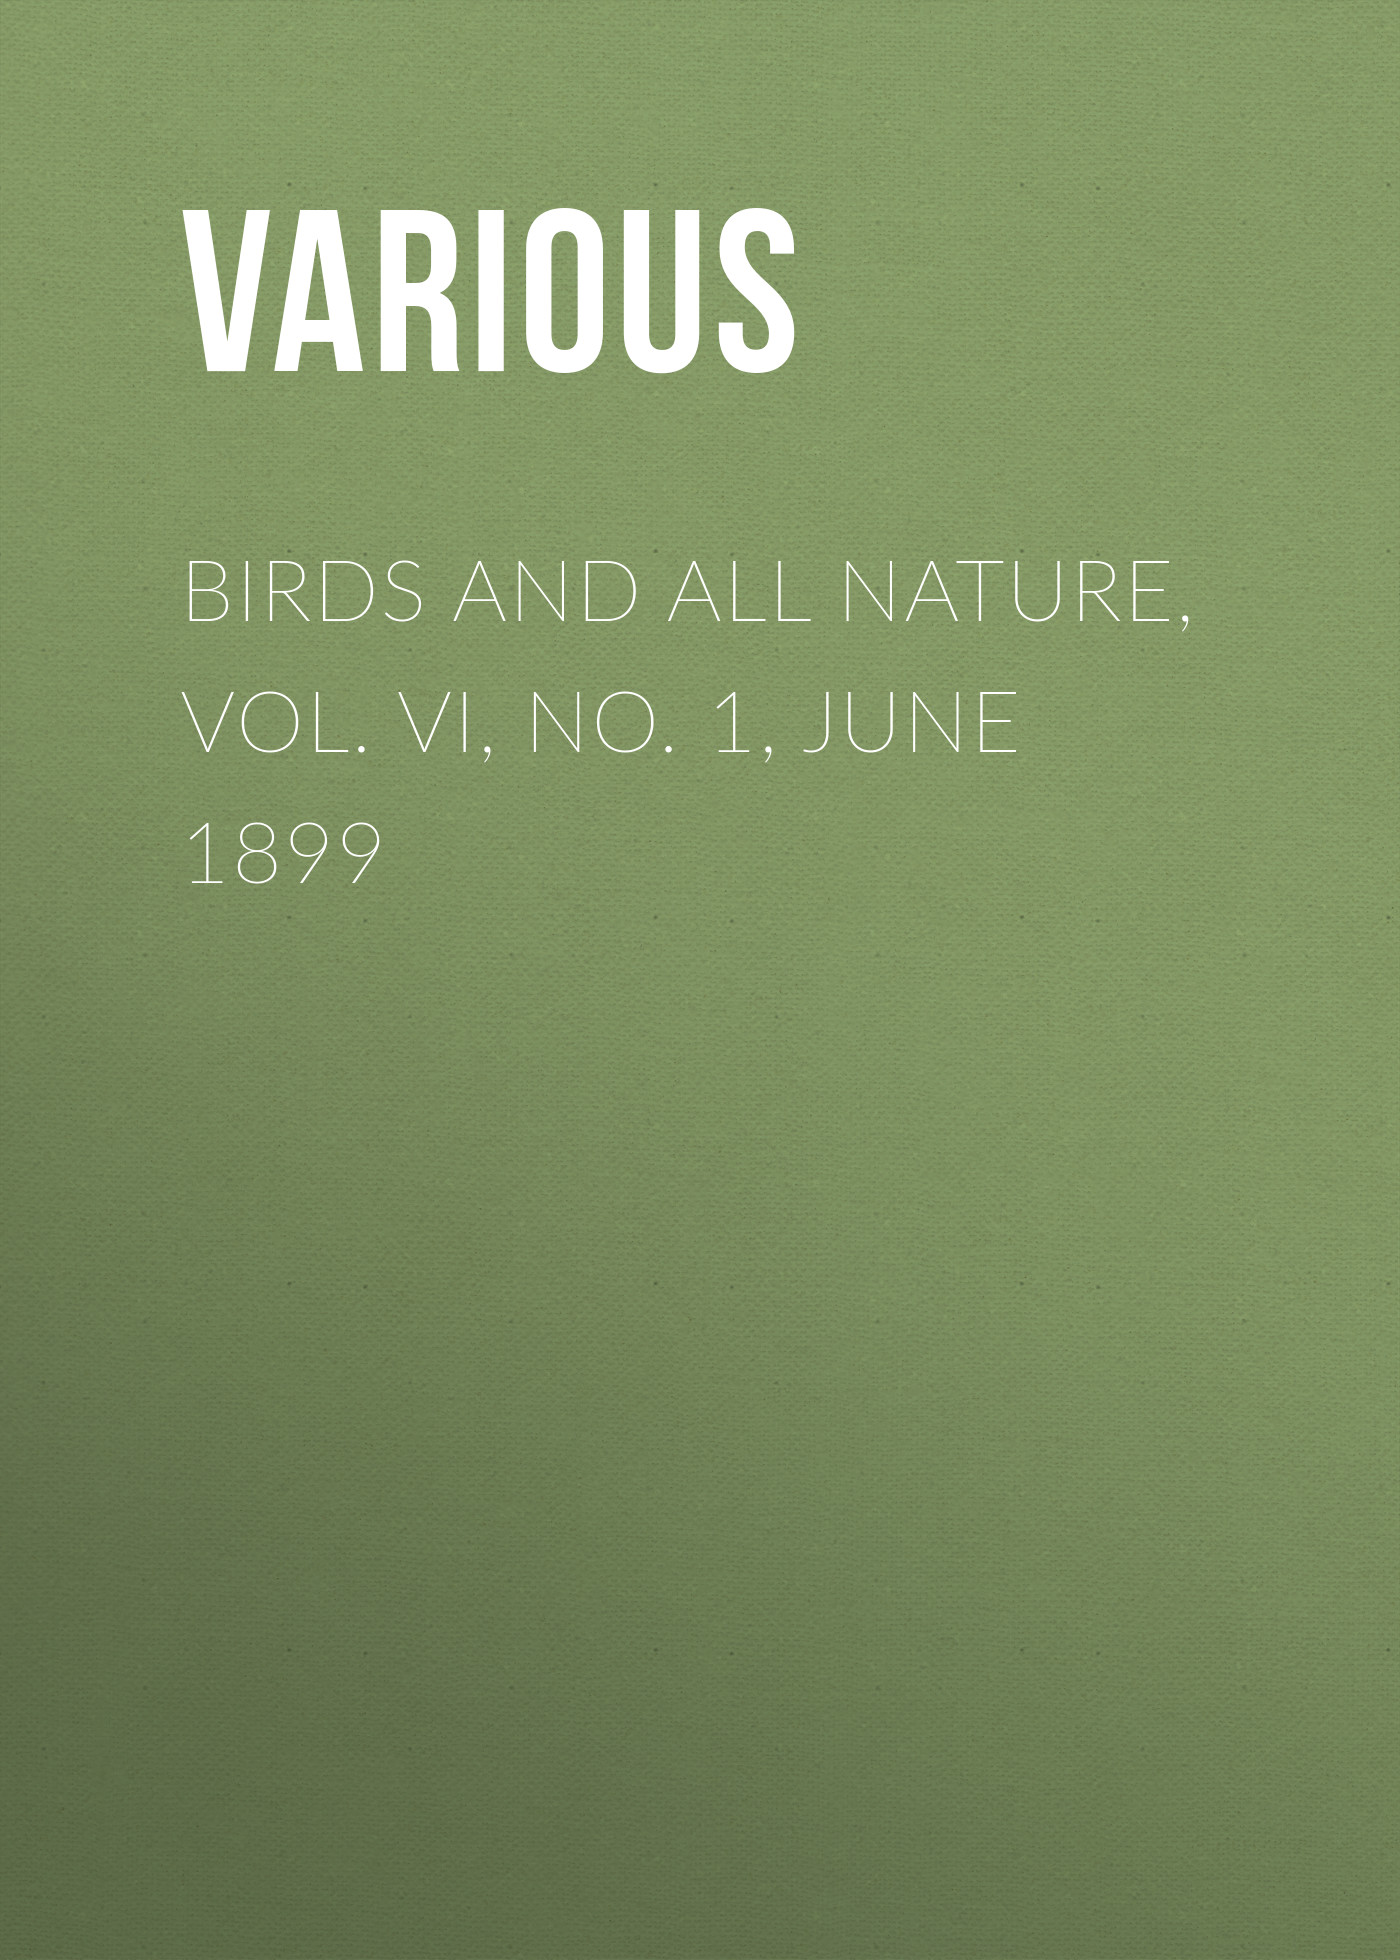 Various Birds and All Nature, Vol. VI, No. 1, June 1899 all new all different avengers vol 2 standoff